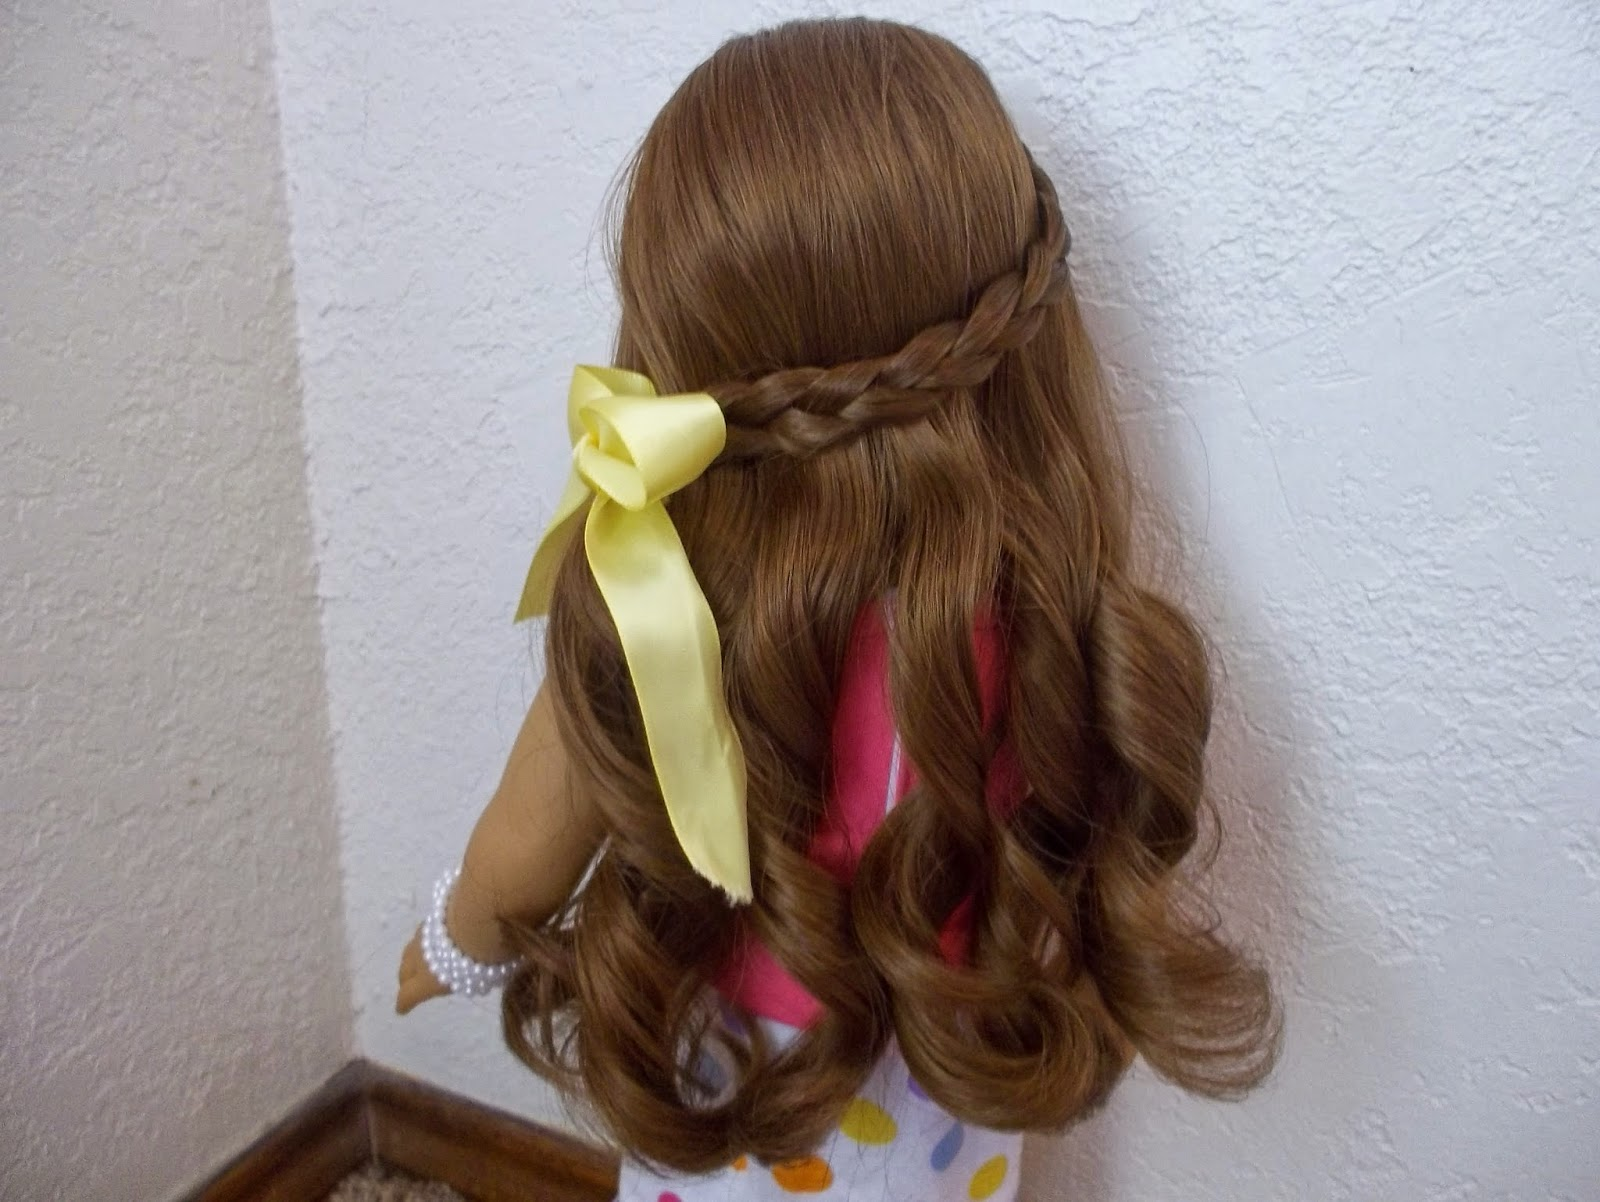 Stupendous Cute American Girl Doll Hairstyles Trends Hairstyle Hairstyle Inspiration Daily Dogsangcom